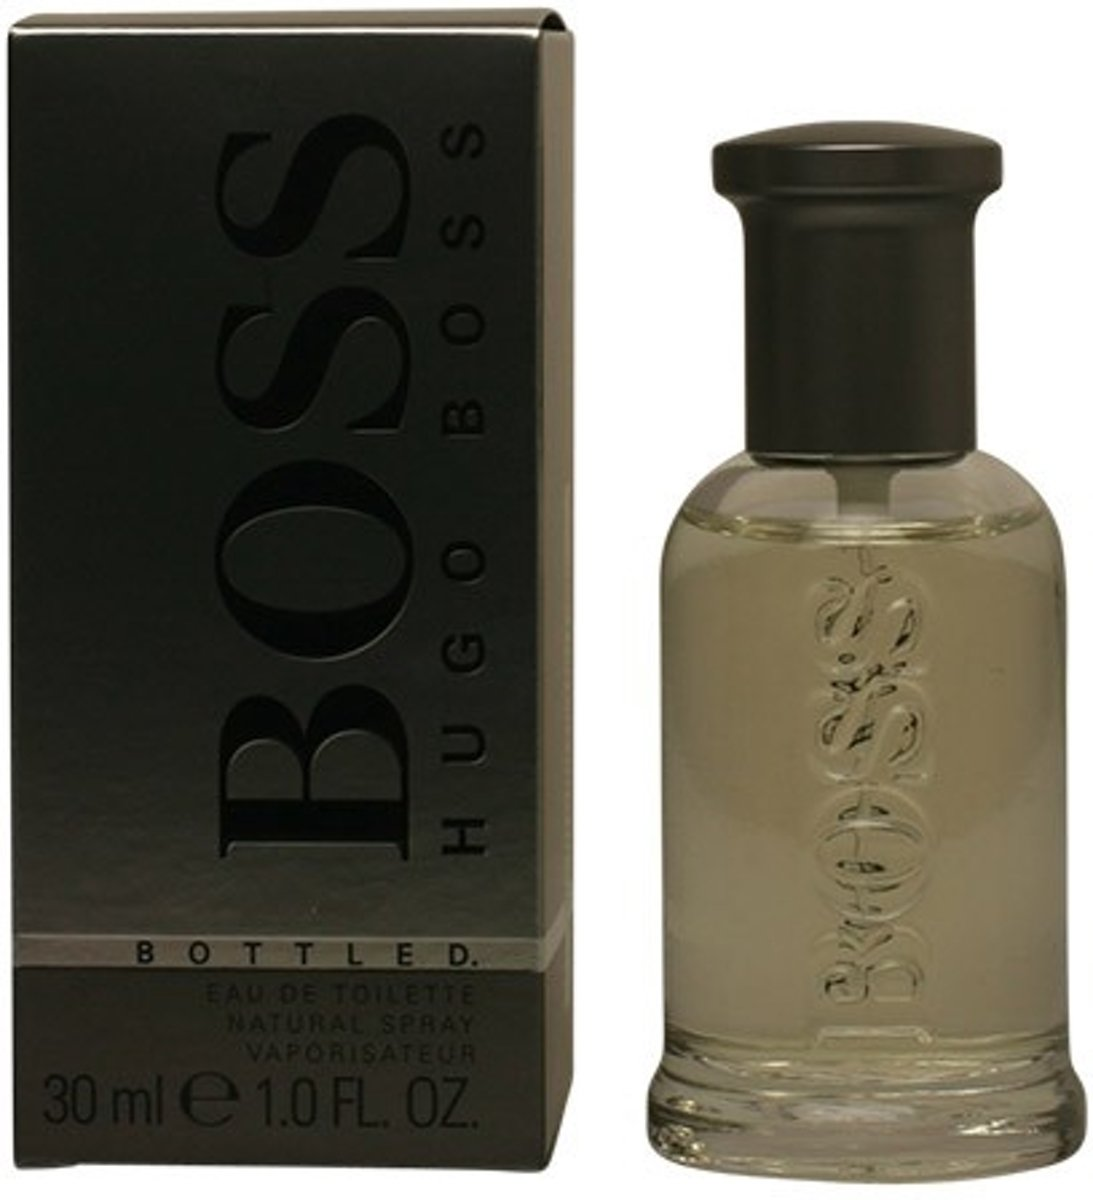 PROMO 2 stuks BOSS BOTTLED eau de toilette spray 30 ml